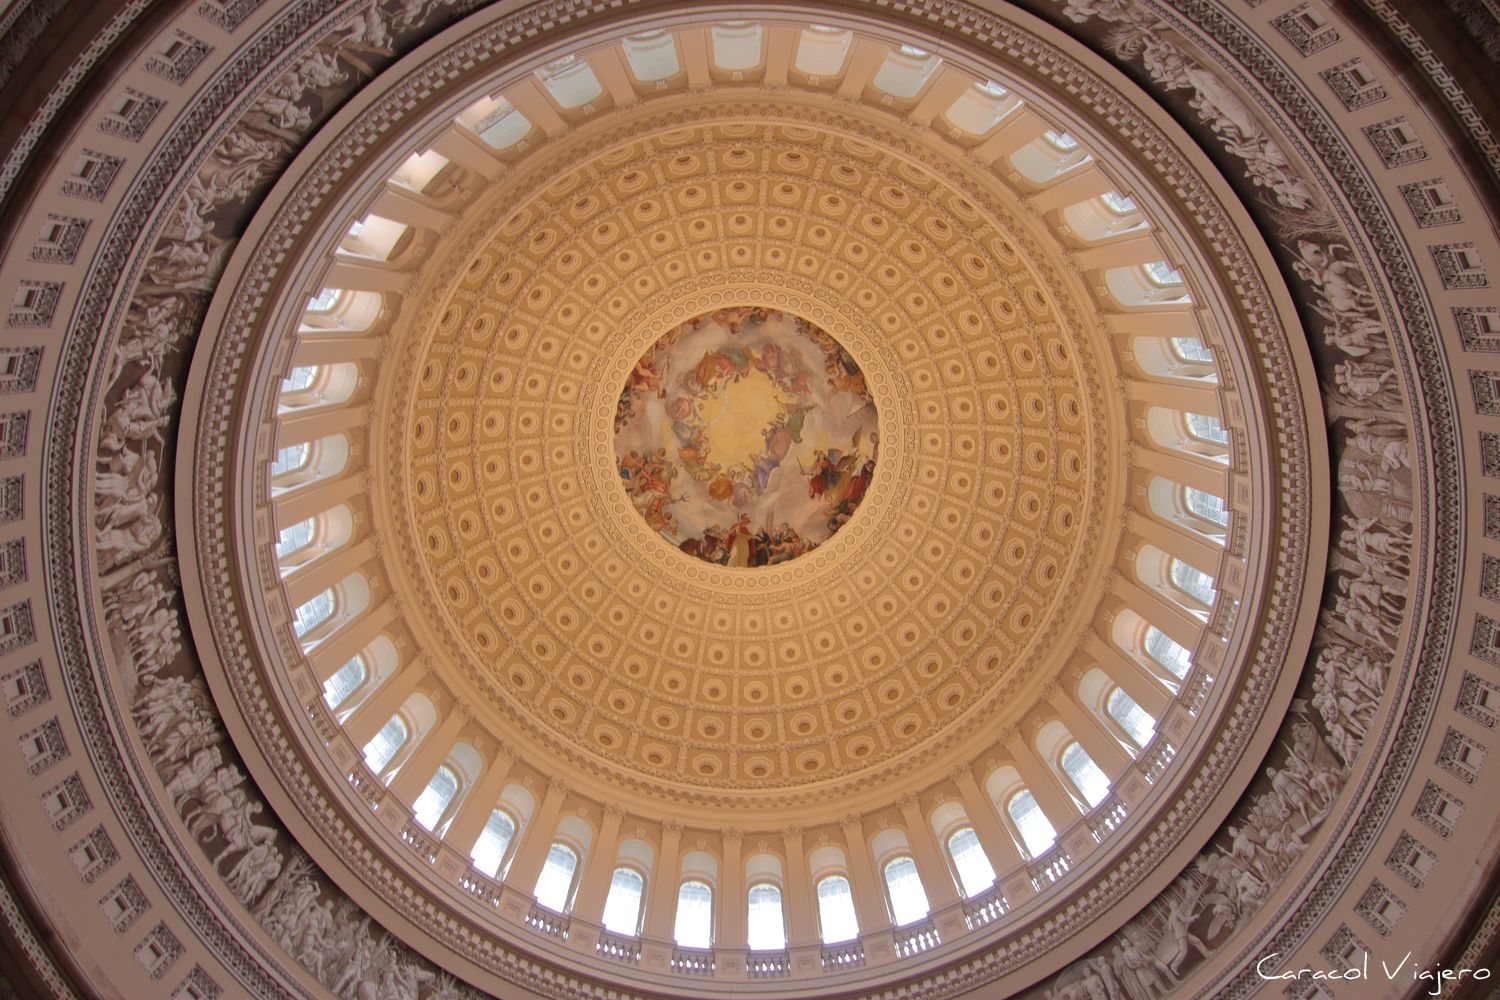 El capitolio de Washington D.C. interior